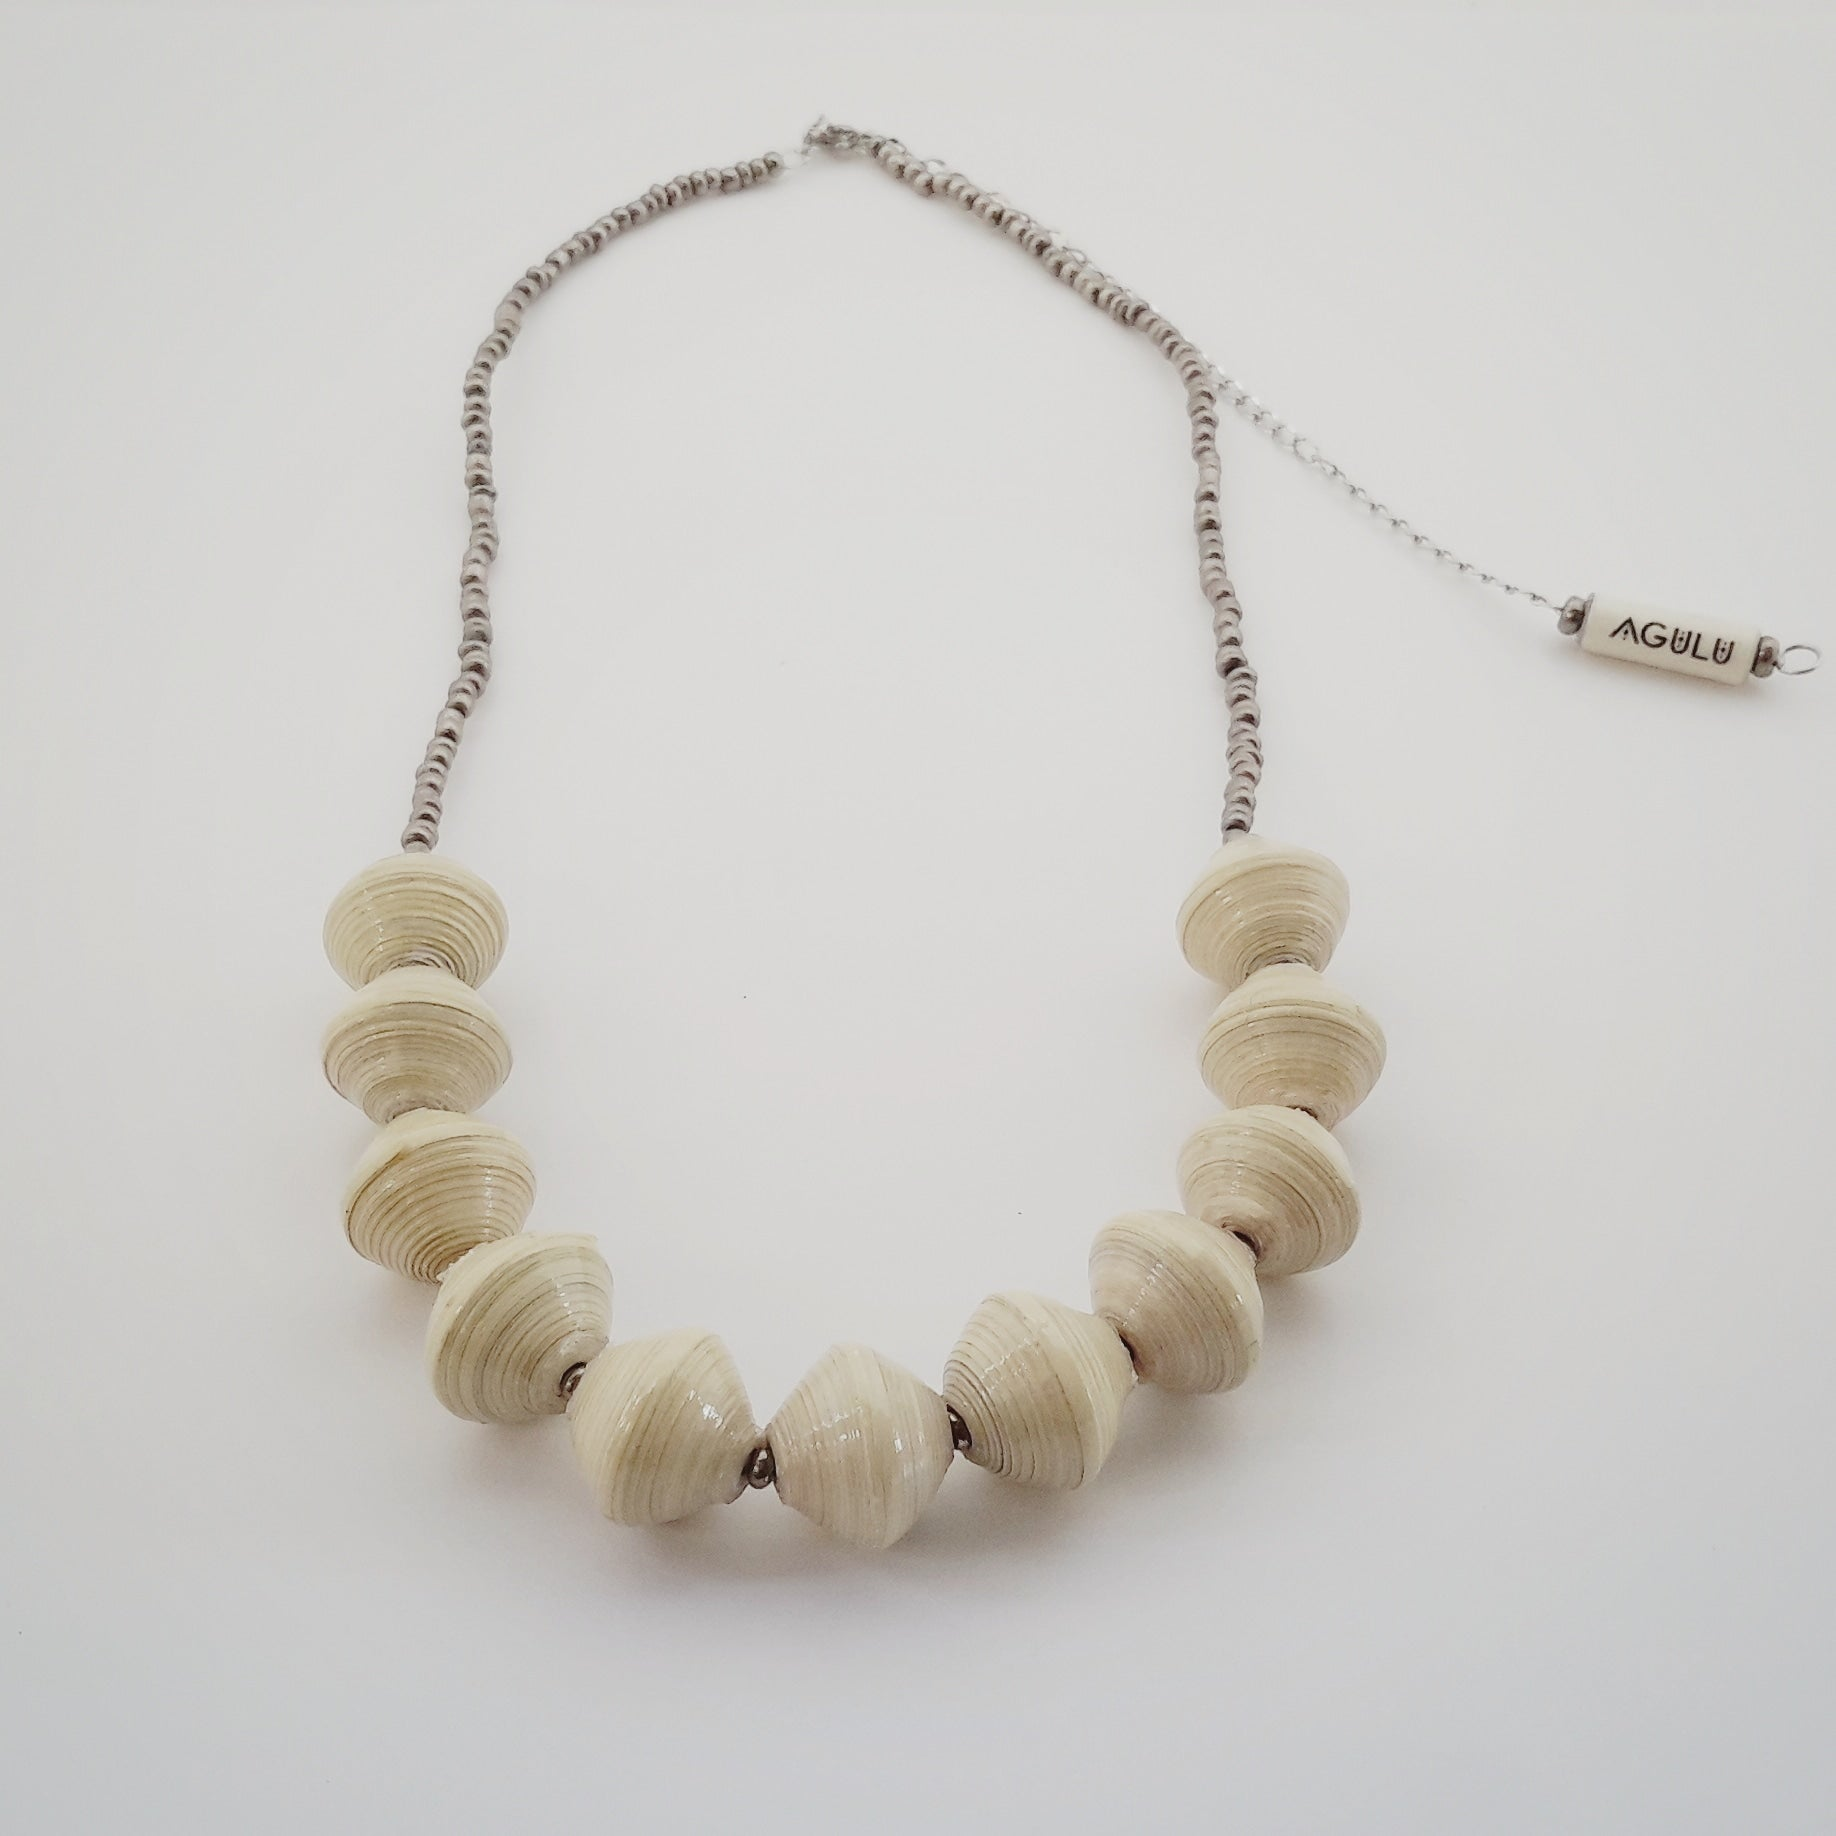 Natural white hand made ethical design paper bead necklace made out of recycled paper in Uganda by principles of fair trade, ethical and sustainable fashion, empowering women of post war area, by Finnish / Scandinavian brand, Agulu Paper Beads. Eettinen luonnonvalkoinen käsintehty design kaulakoru, joka on tehty kierrätyspaperista reilun kaupan periaattein työllistämällä Ugandalaisia nasia.